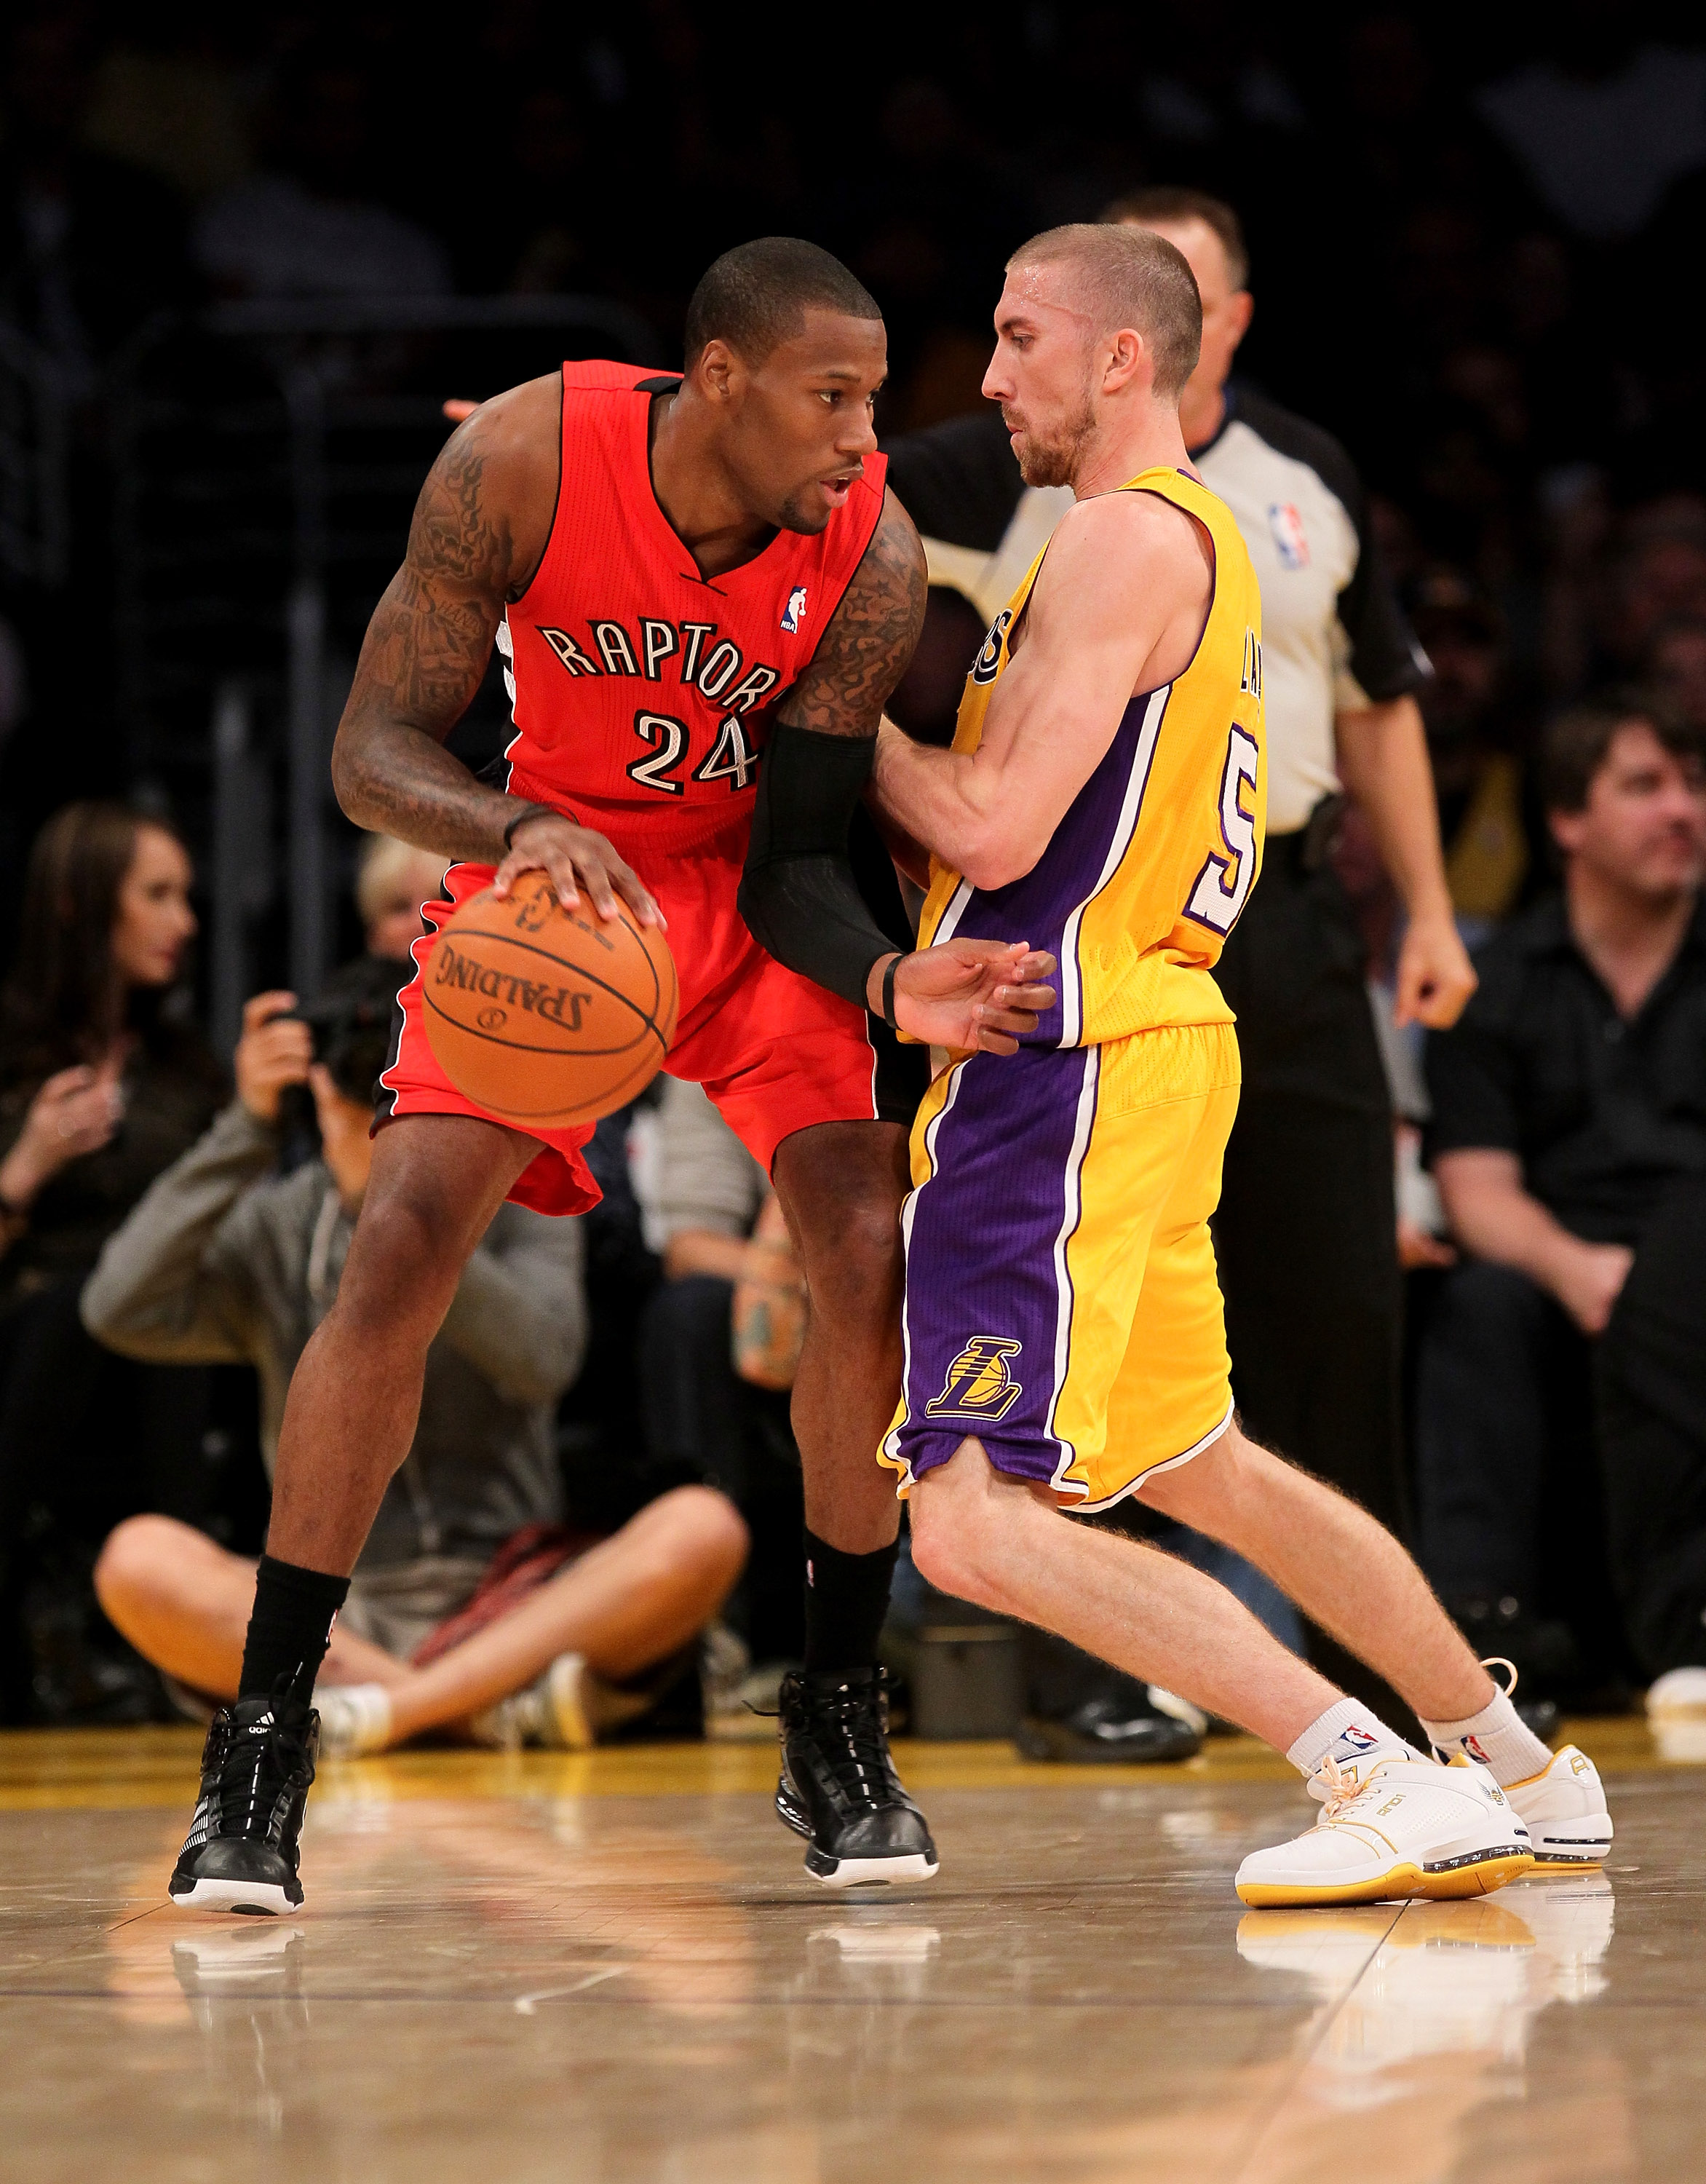 LOS ANGELES - NOVEMBER 5:  Sonny Weims #24 of the Toronto Raptors controls the ball against Steve Blake #5 of the Los Angeles Lakers at Staples Center on November 5, 2010 in Los Angeles, California.   NOTE TO USER: User expressly acknowledges and agrees t